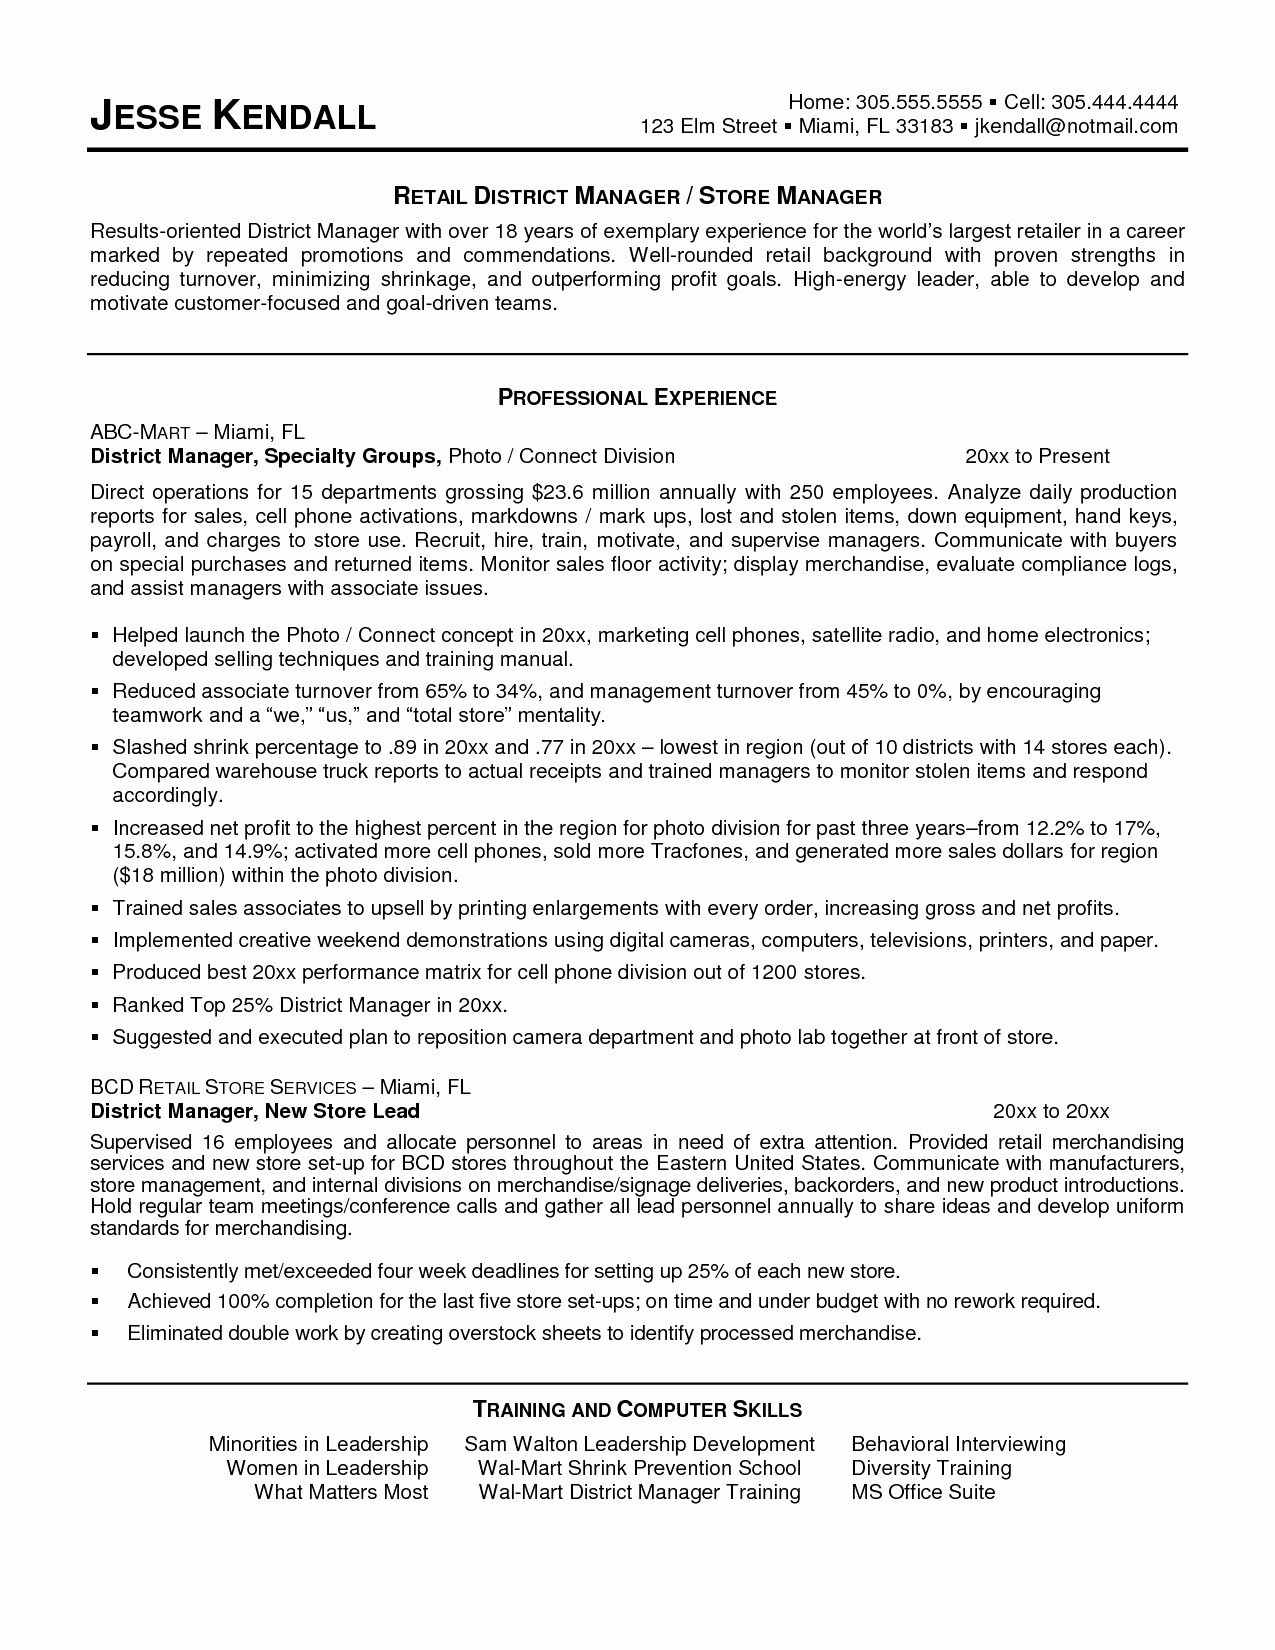 Resume for someone with No Experience - Resume for No Experience Awesome Resume for First Job No Experience